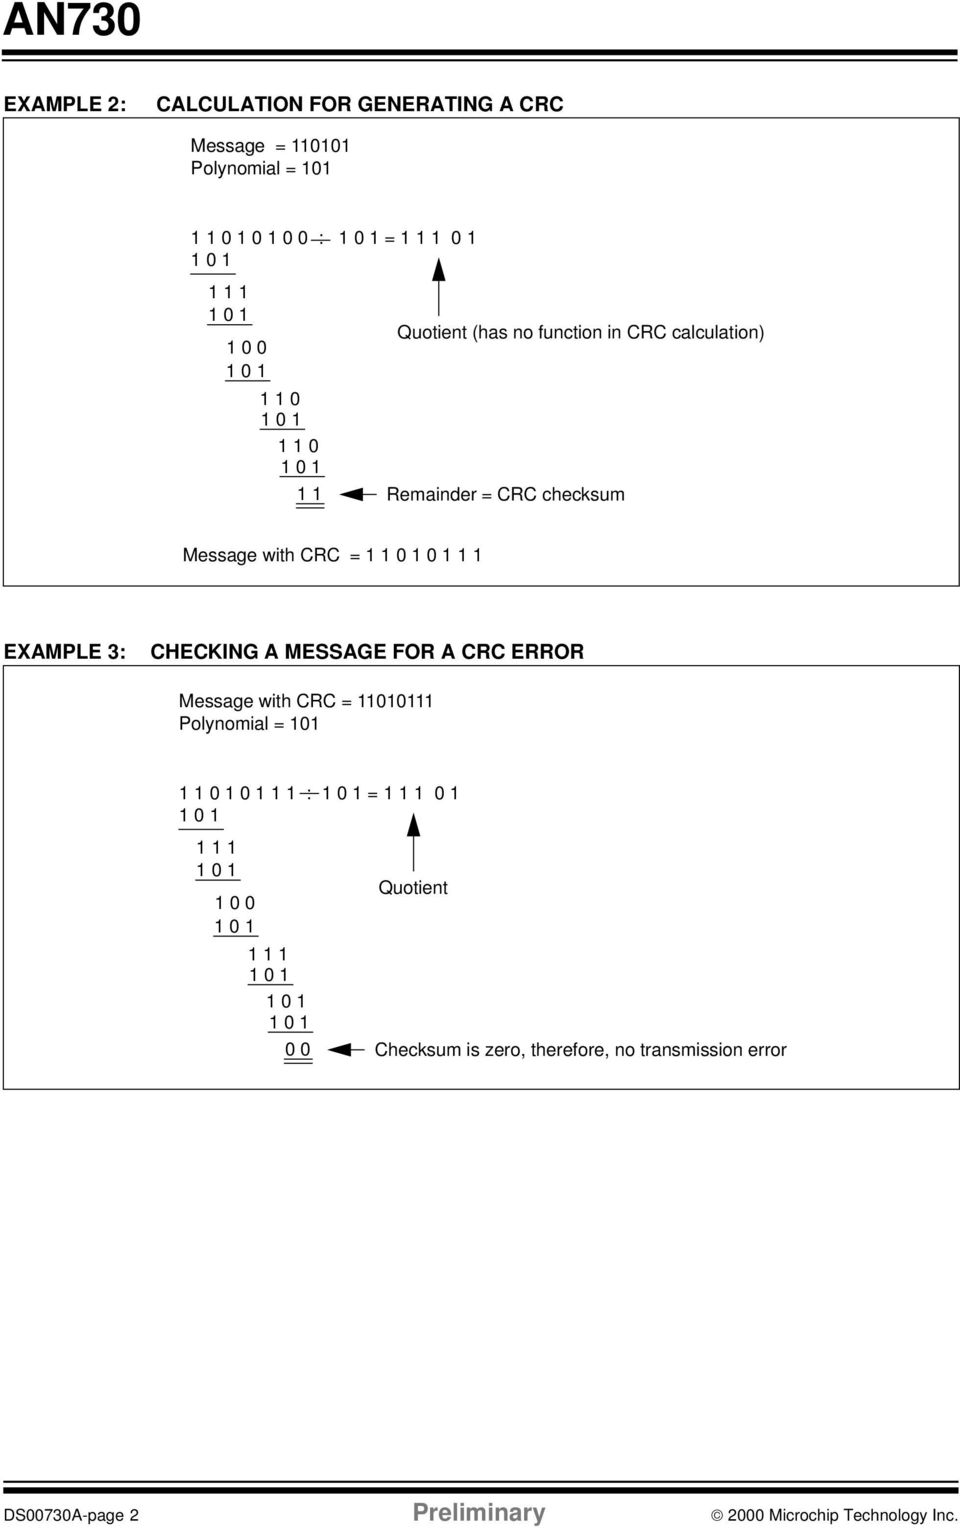 AN730  CRC Generating and Checking INTRODUCTION THEORY OF OPERATION